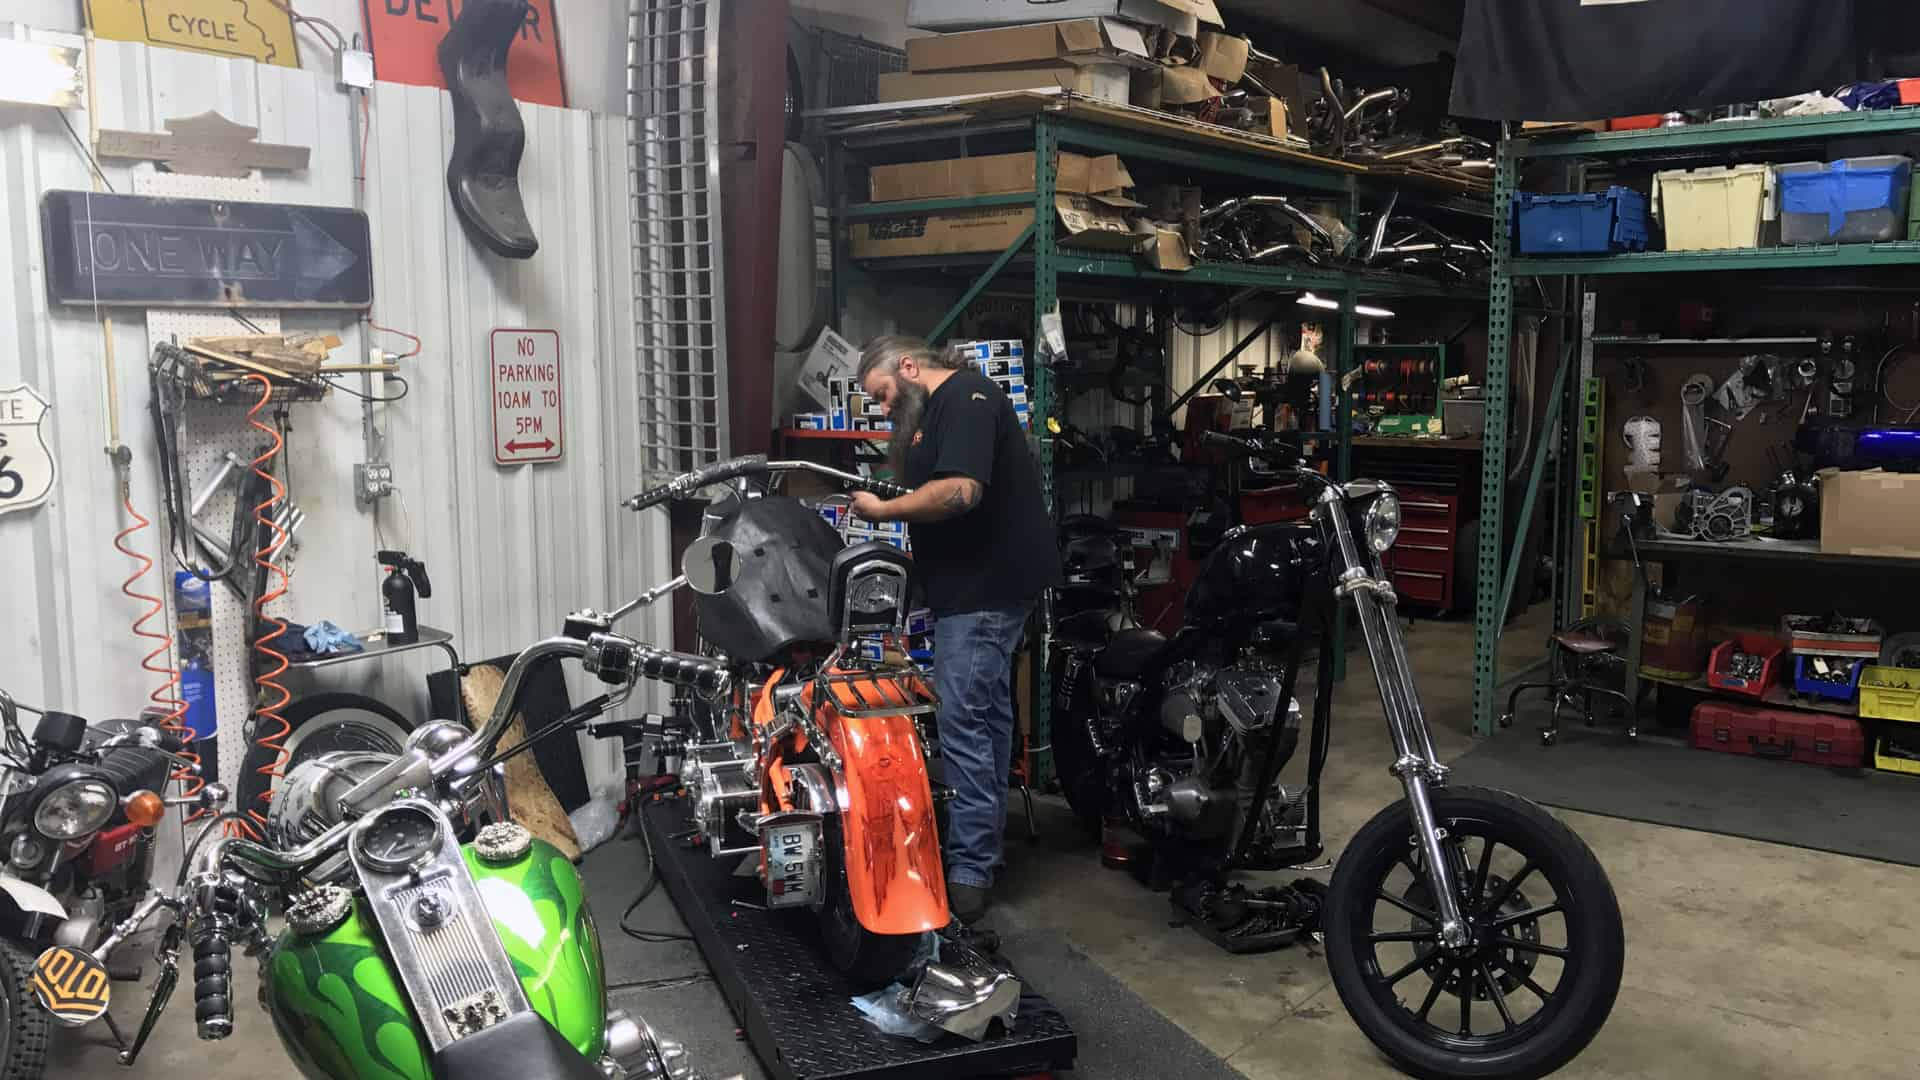 Motorcycle Accident Repair Shop, Motorcycle Accident Repair Shop